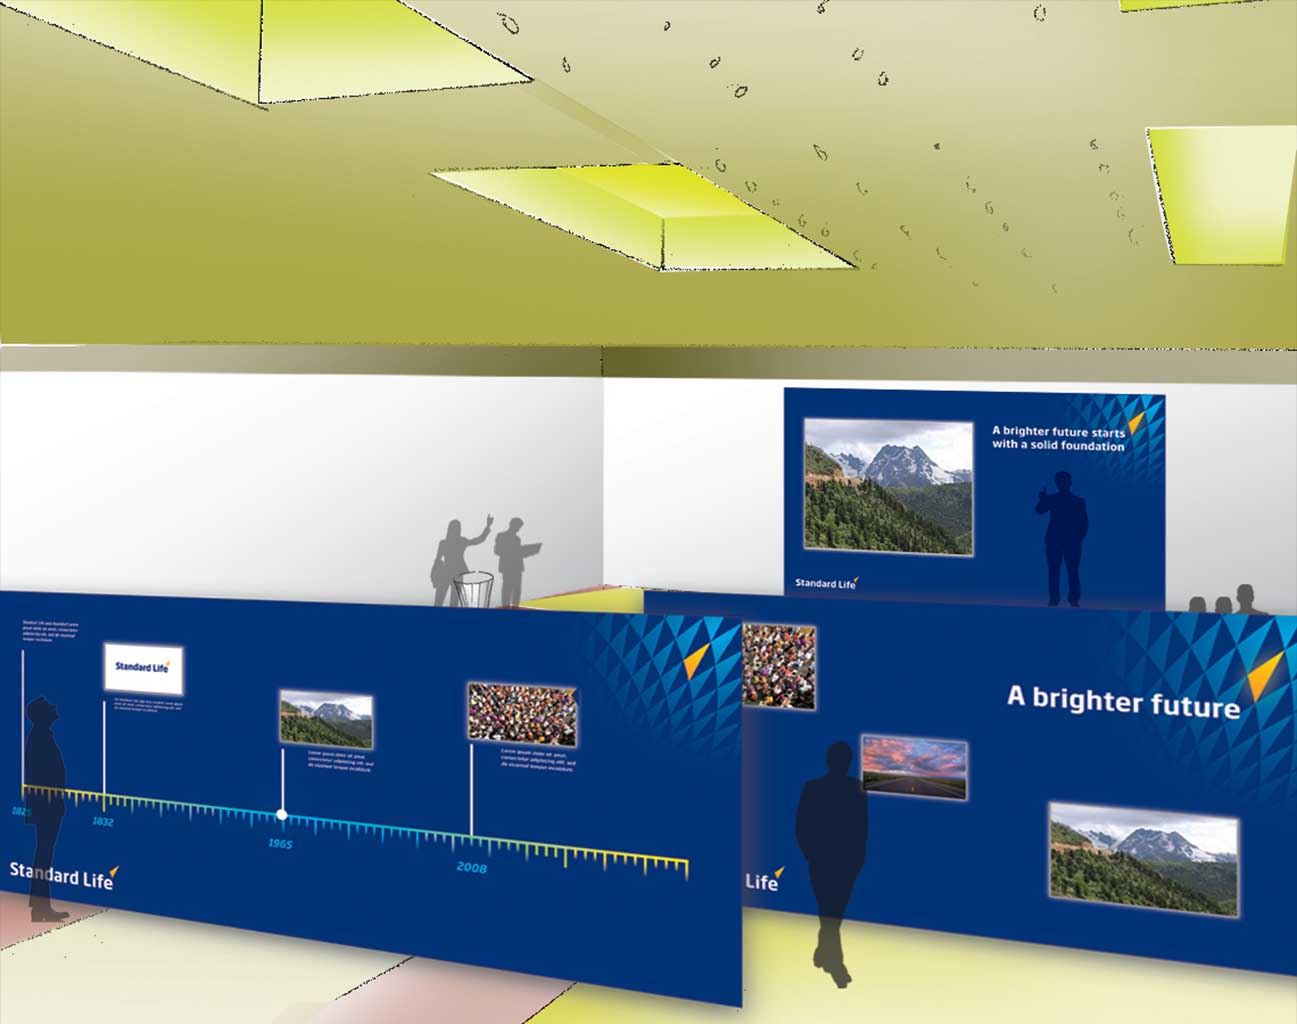 Standard Life - Fred - Dubai - mock up of timeline wall for insurance company launch event